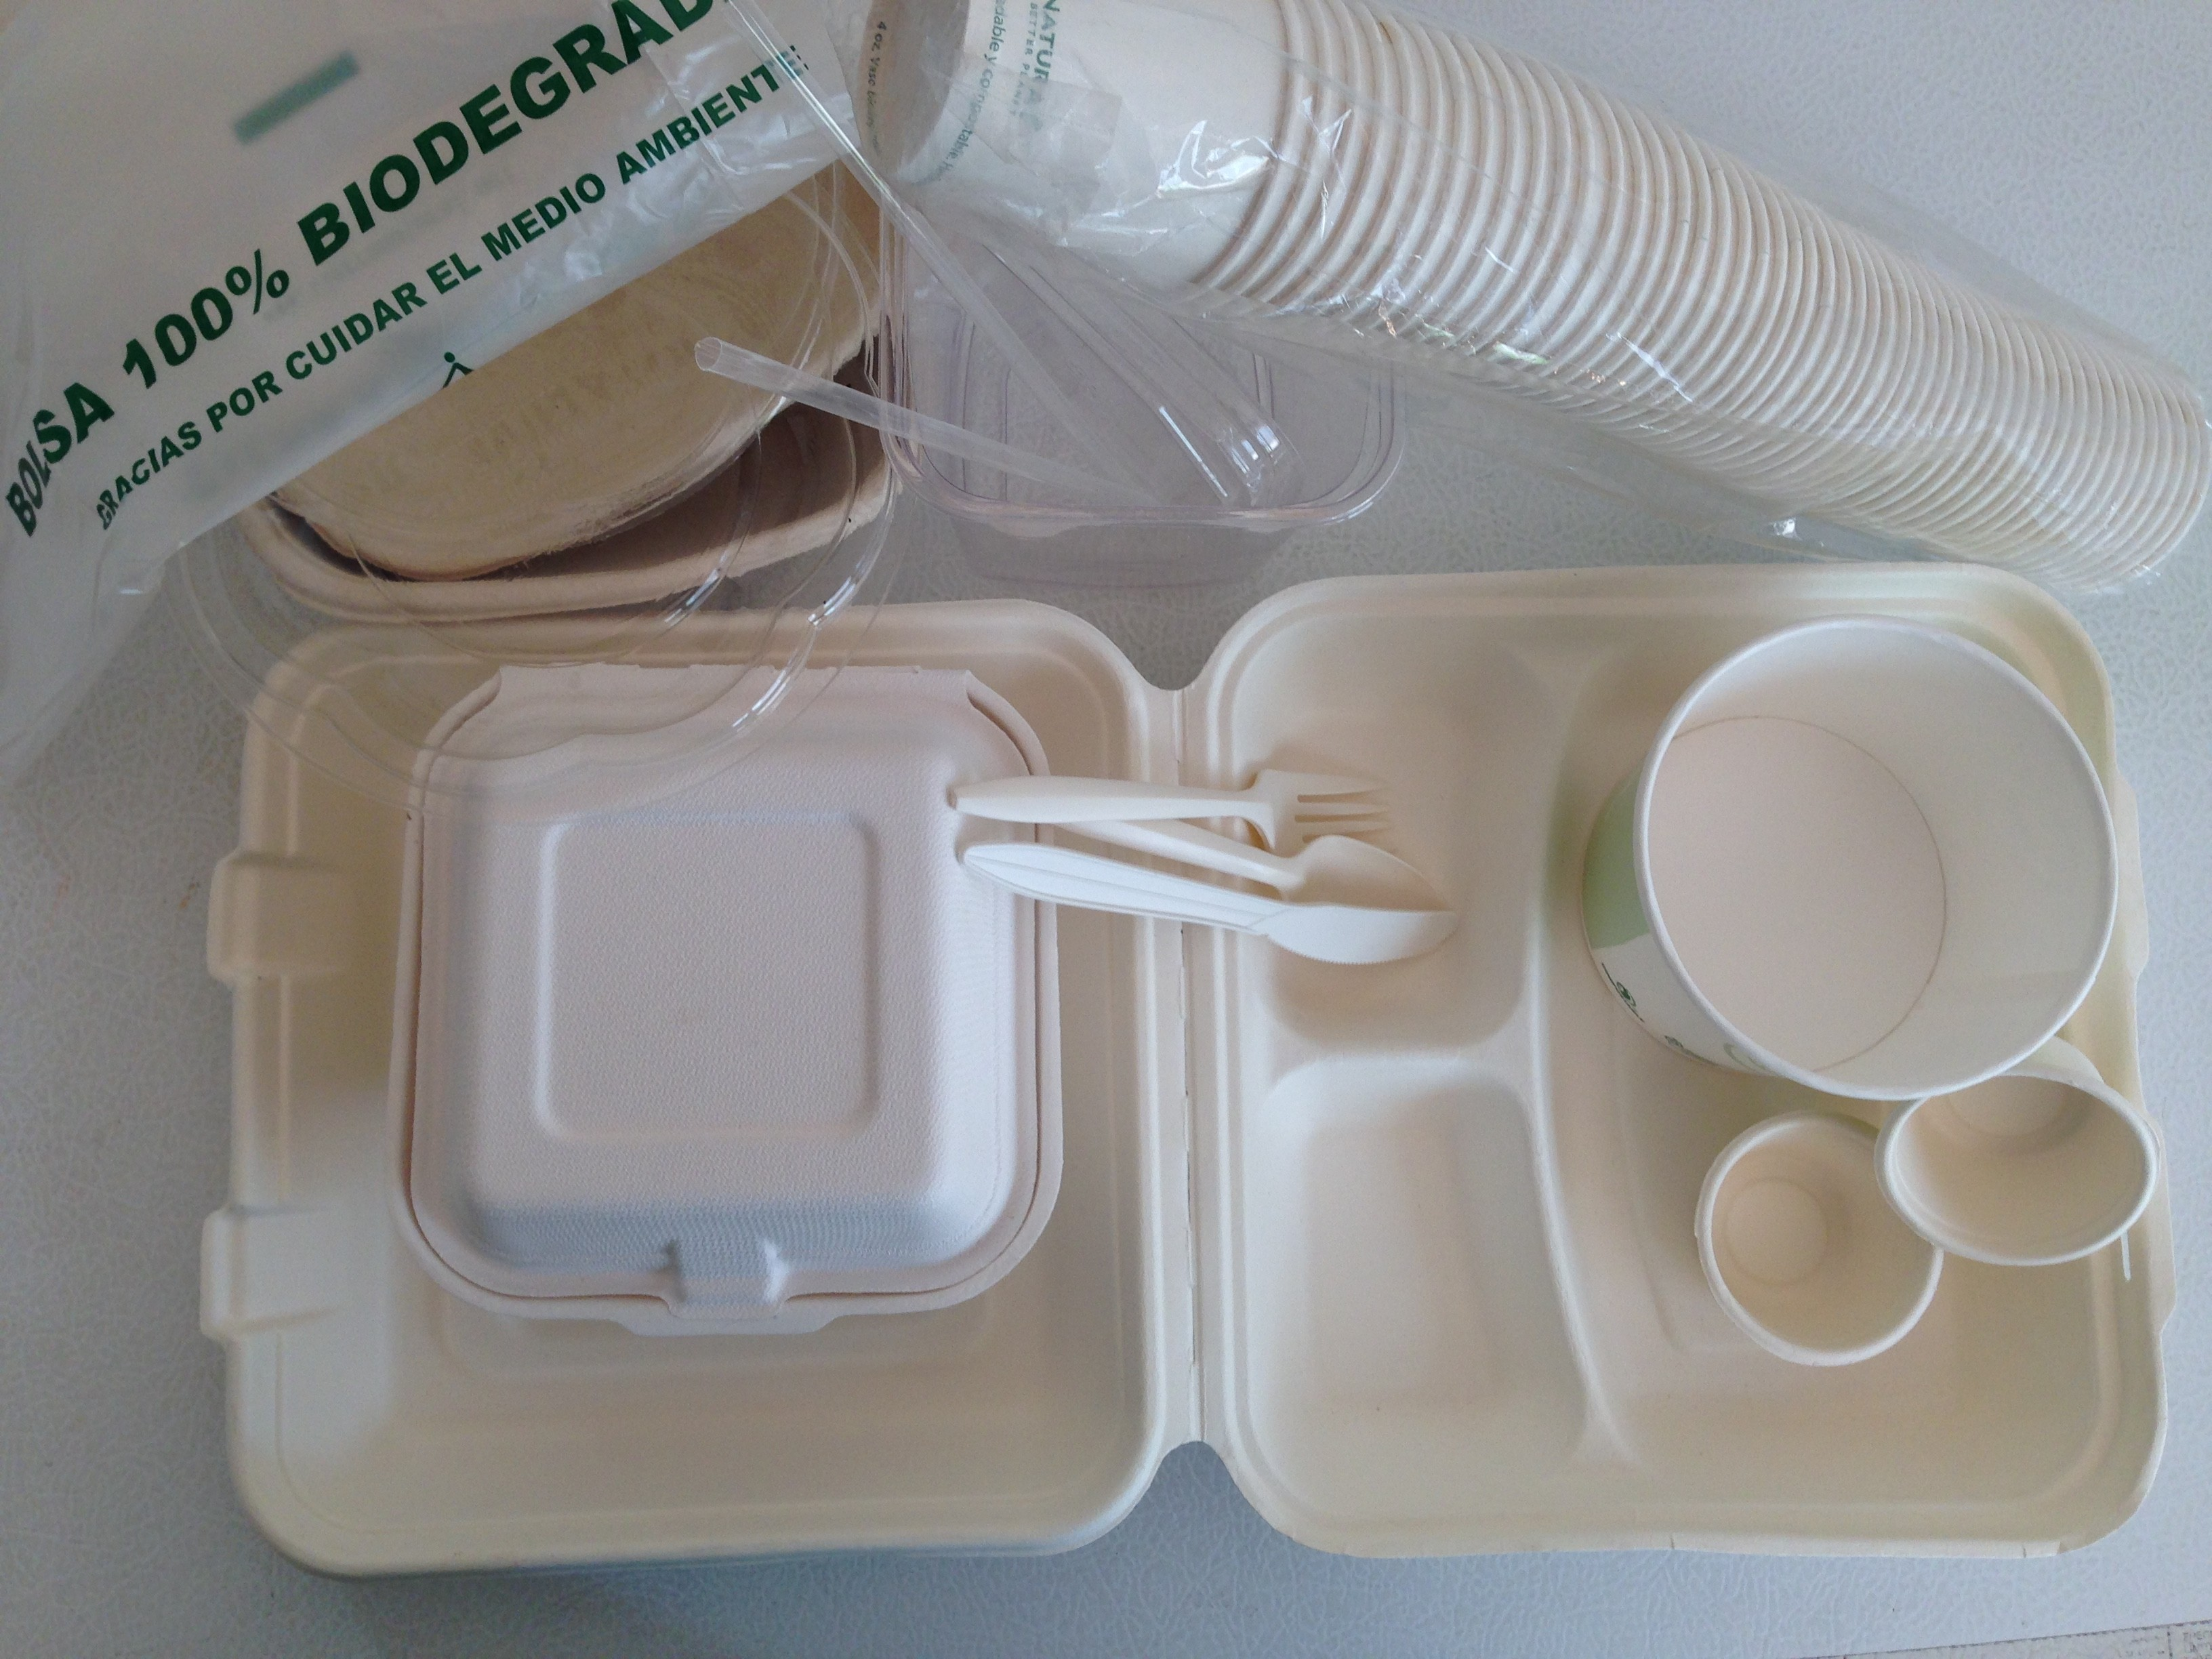 Desechables biodegradables